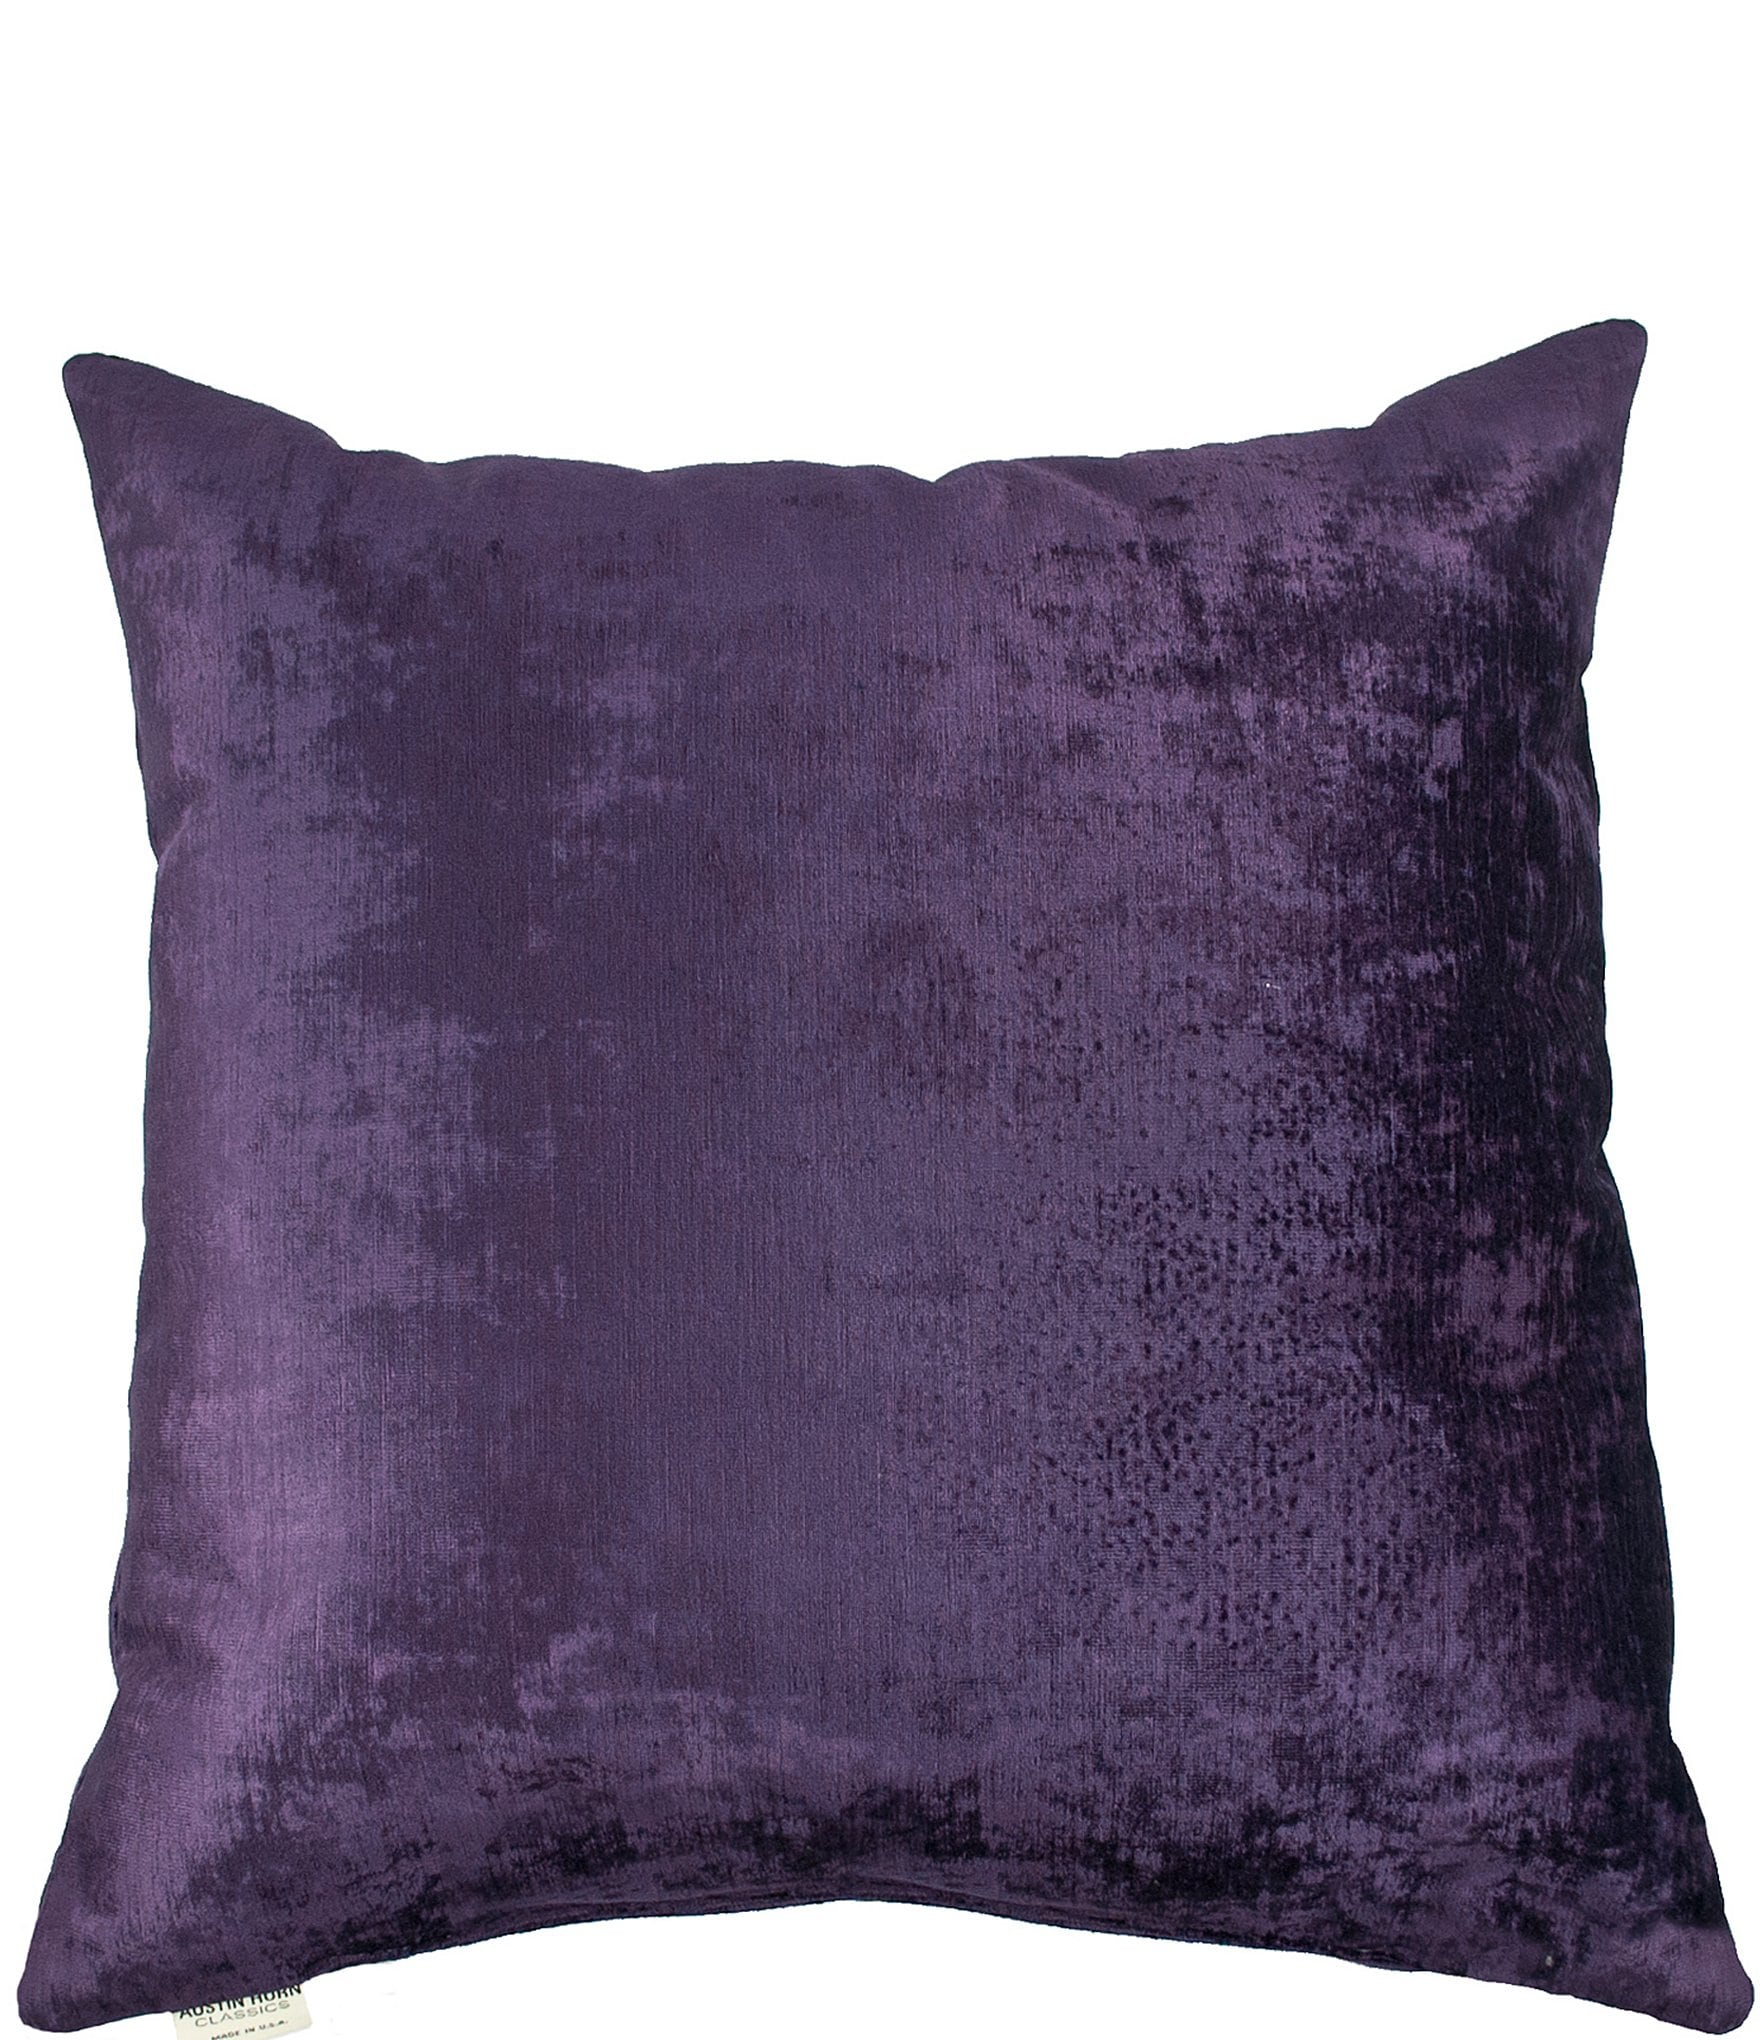 home  bedding  decorative pillows  dillardscom -